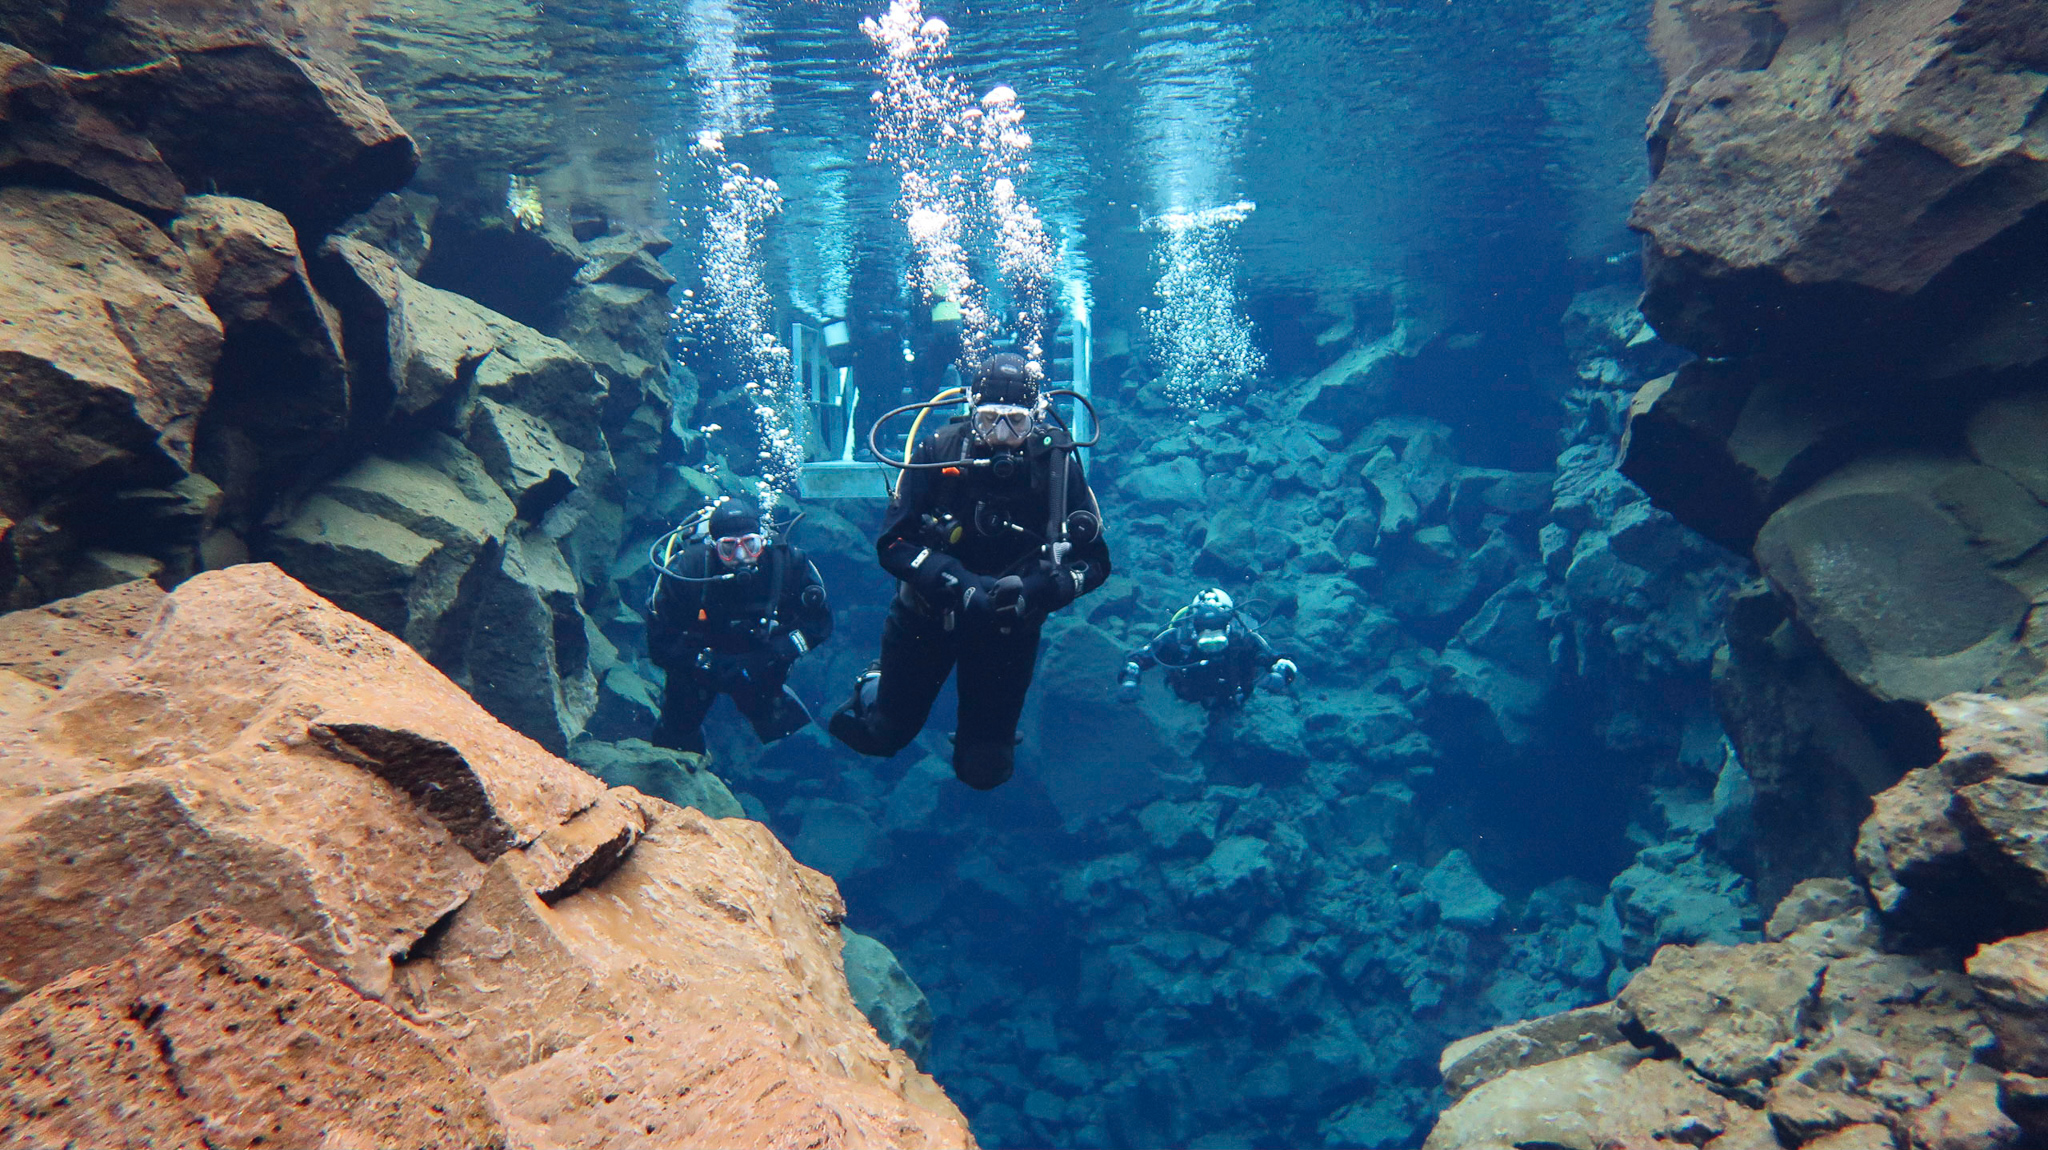 Crystal clear water at Silfra Fissure in Thingvellir National Park, Iceland. Photo by Tania Roque of DIVE.IS